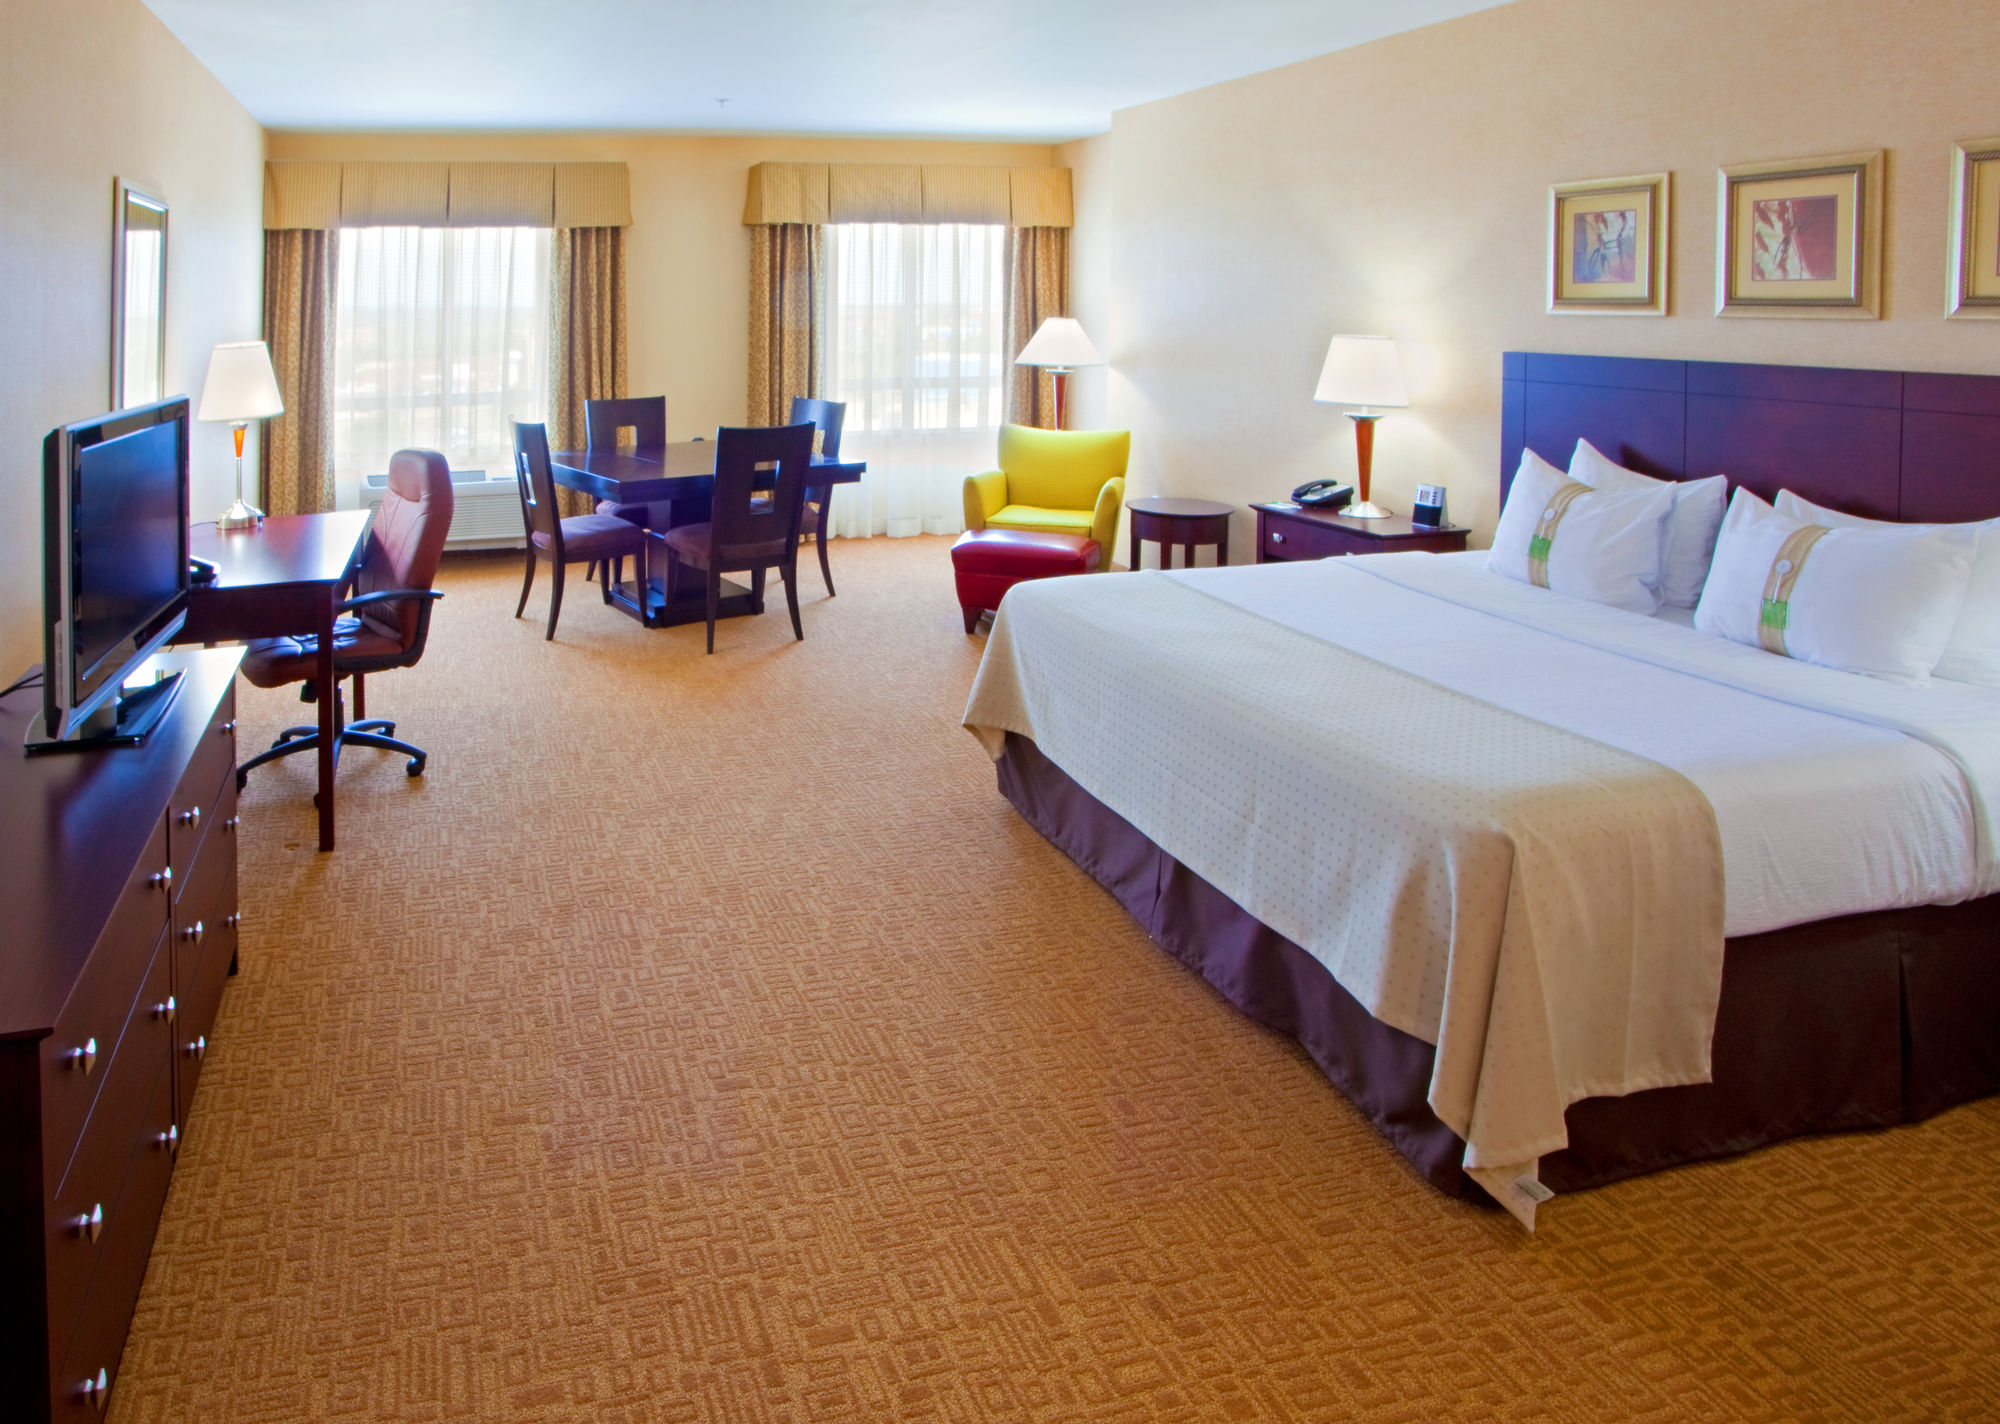 Holiday Inn in Winchester, VA